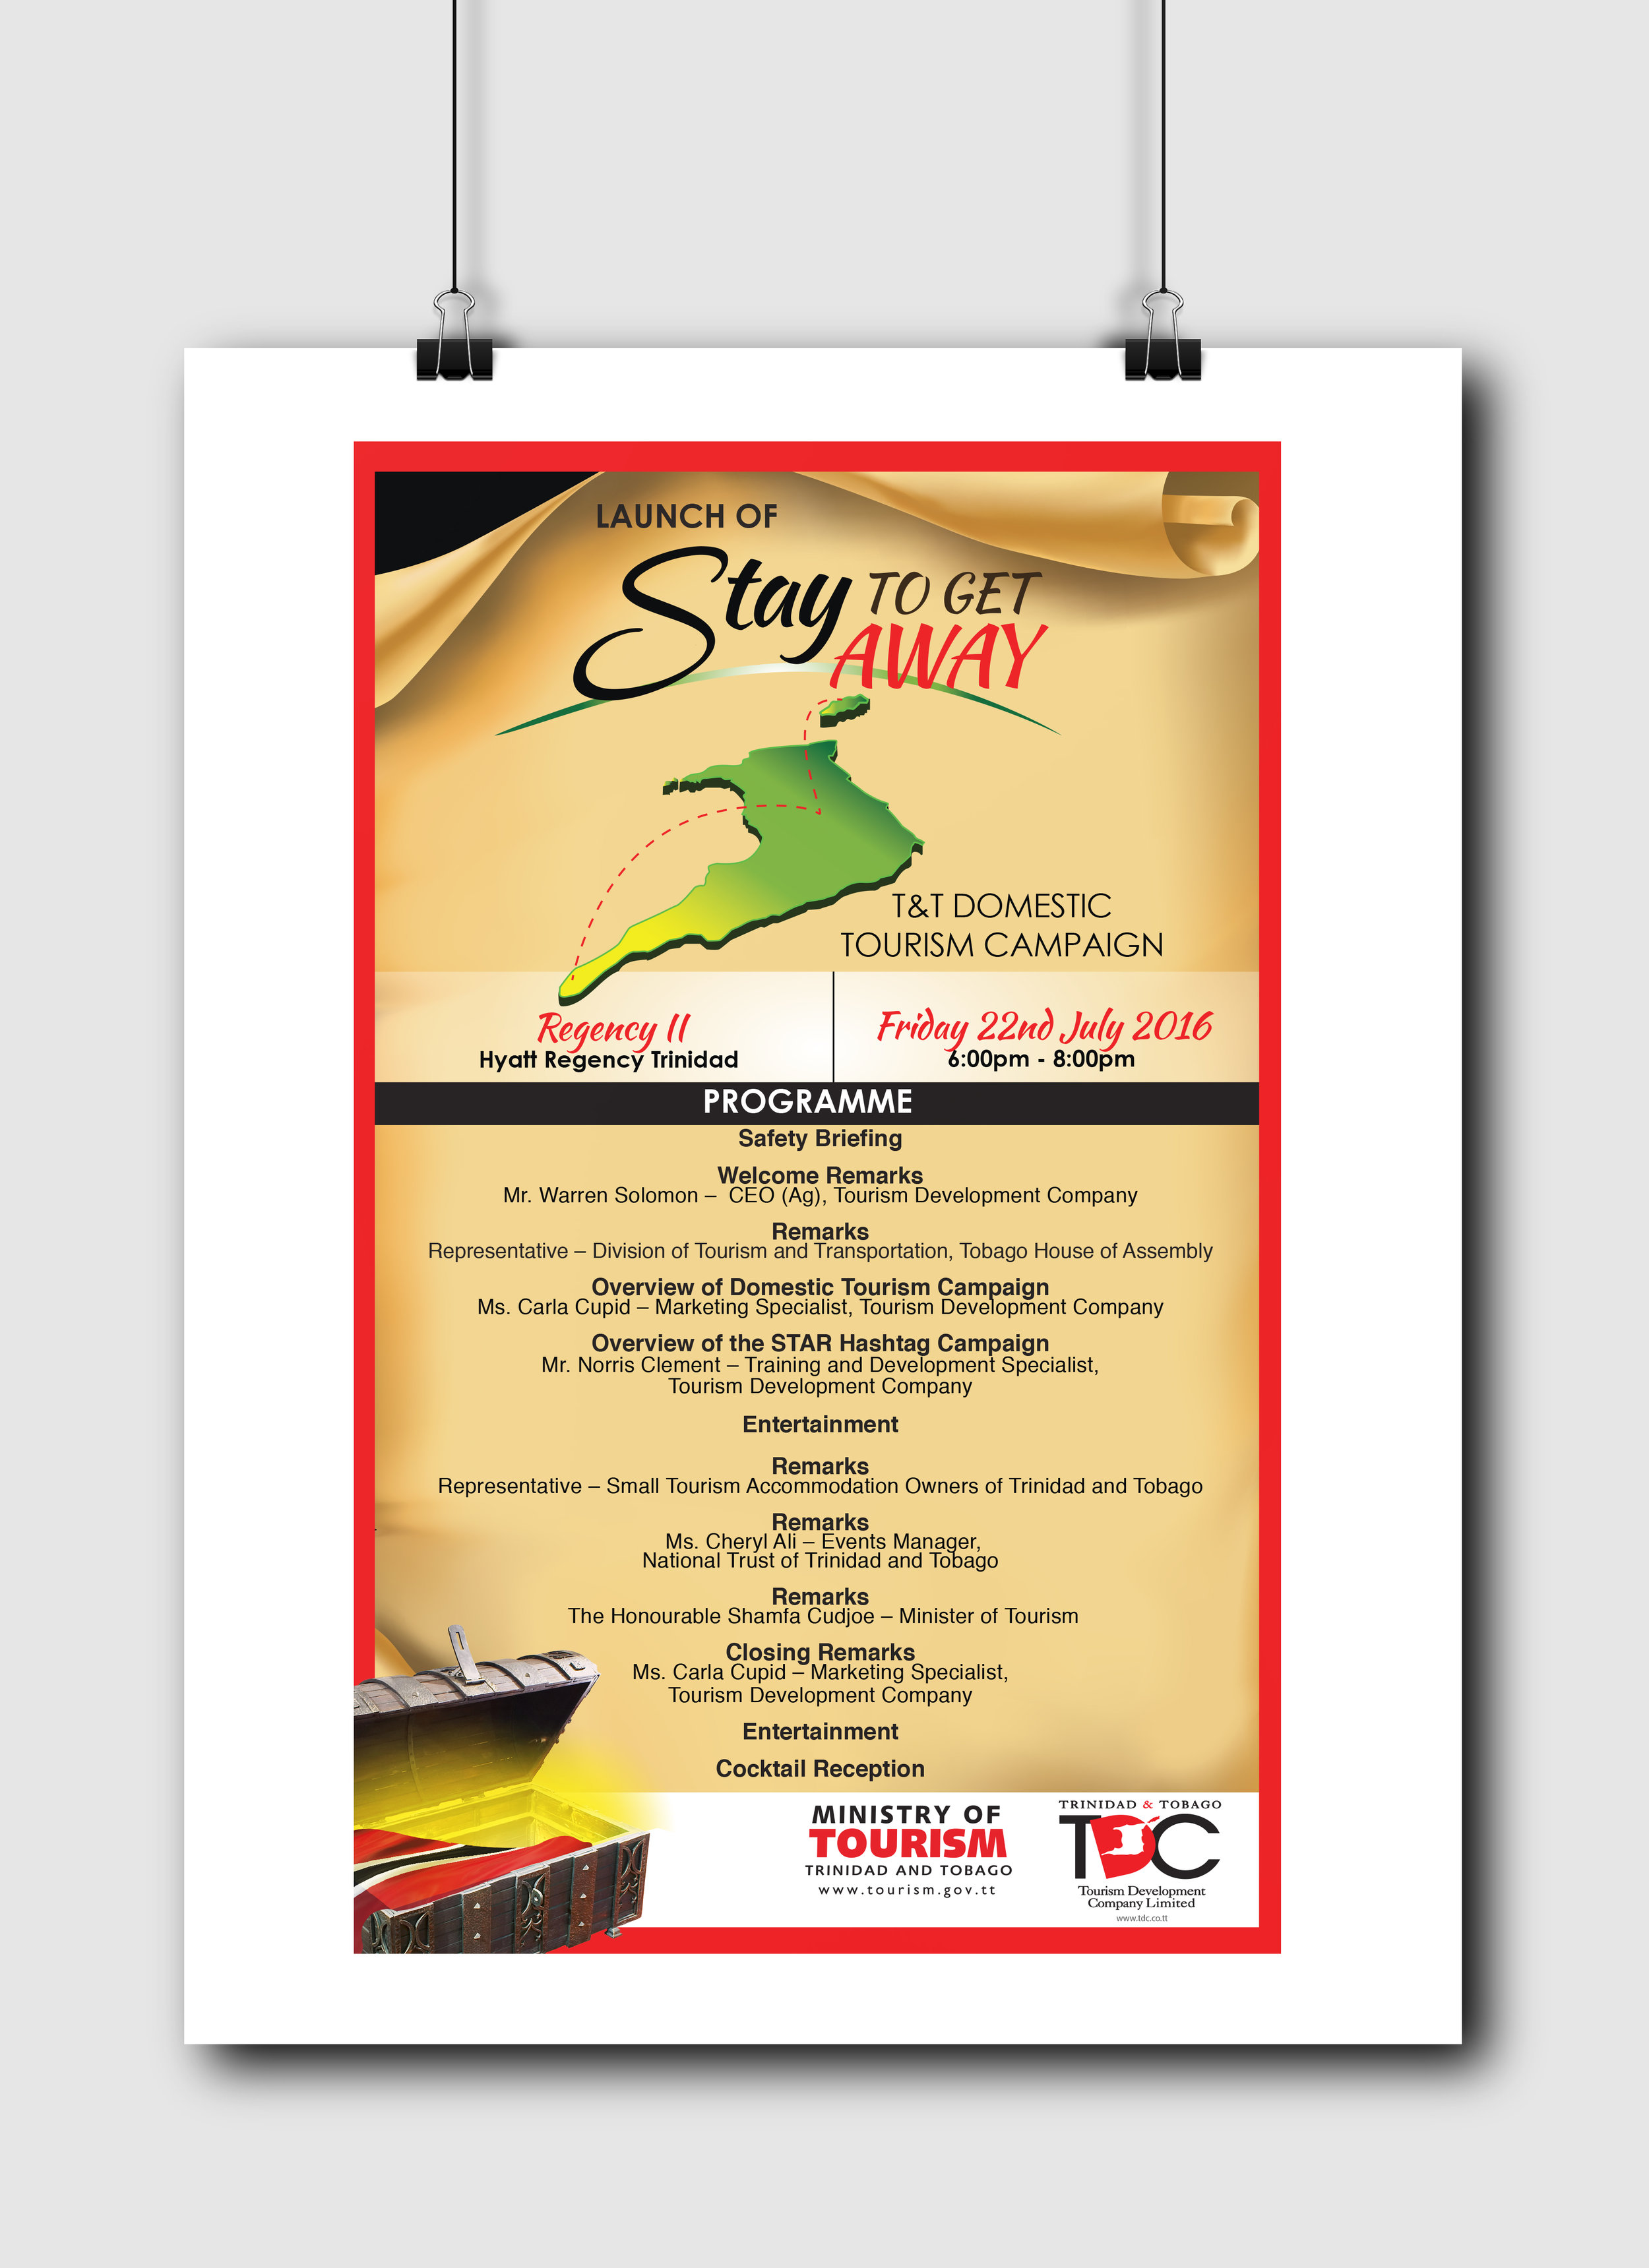 Stay to Get Away Launch Programme Card - Client: The Tourism Development CompanyDescription: Design a programme card for or the launch of the 2016 Stay to Get Away campaign. This design uses an